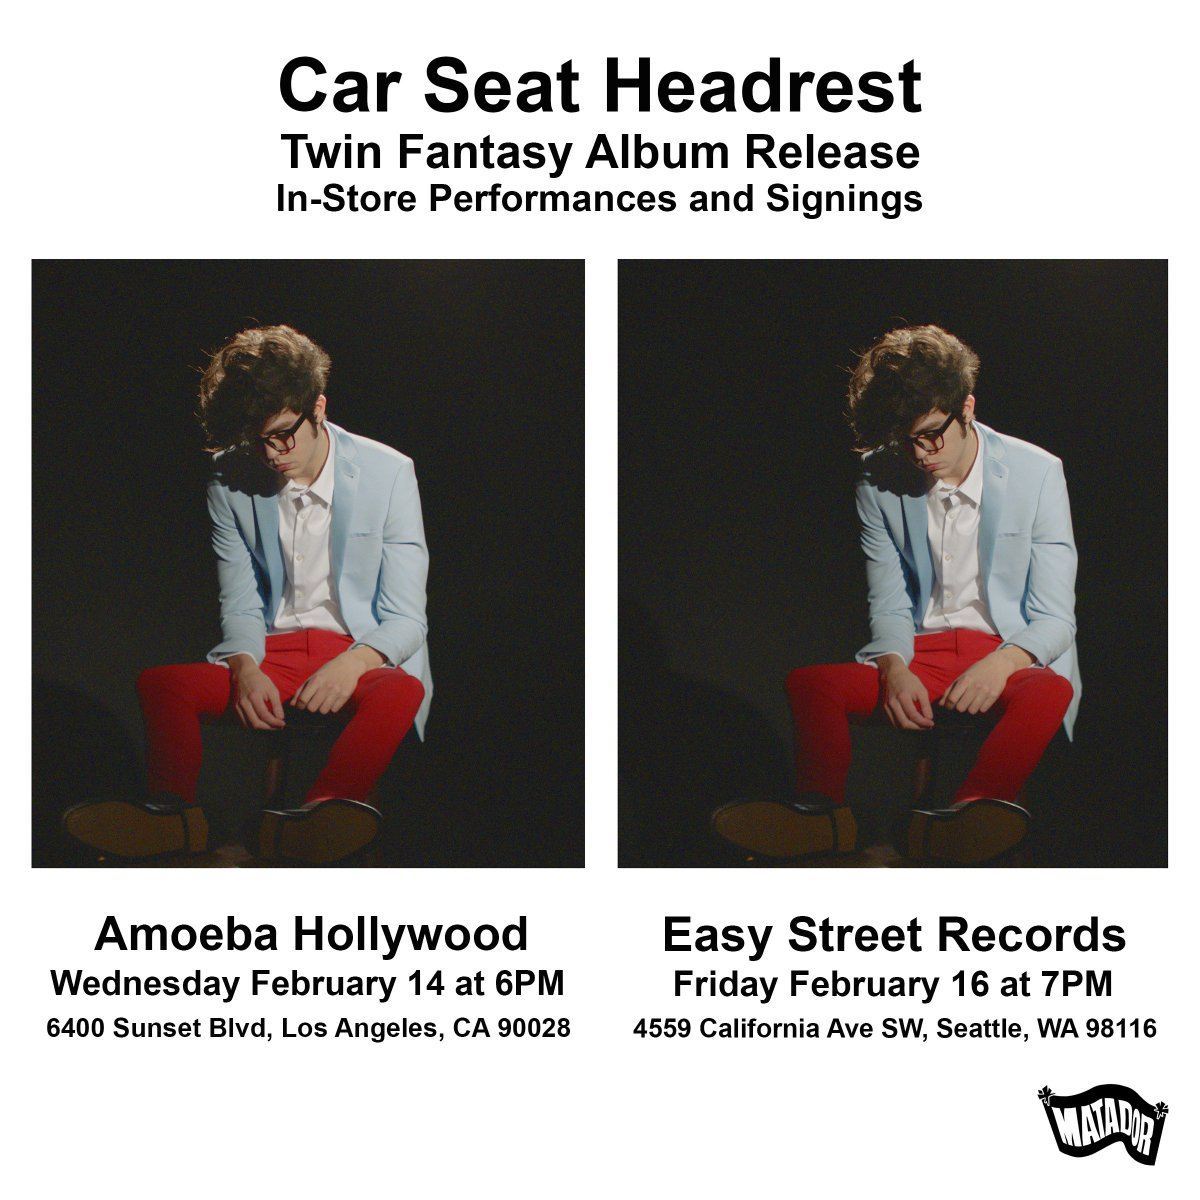 During The Week Of Twin Fantasys Release Carseatheadrest Will Be At Amoebamusic In Hollywood And EasyStRecords Seattle For Store Performances